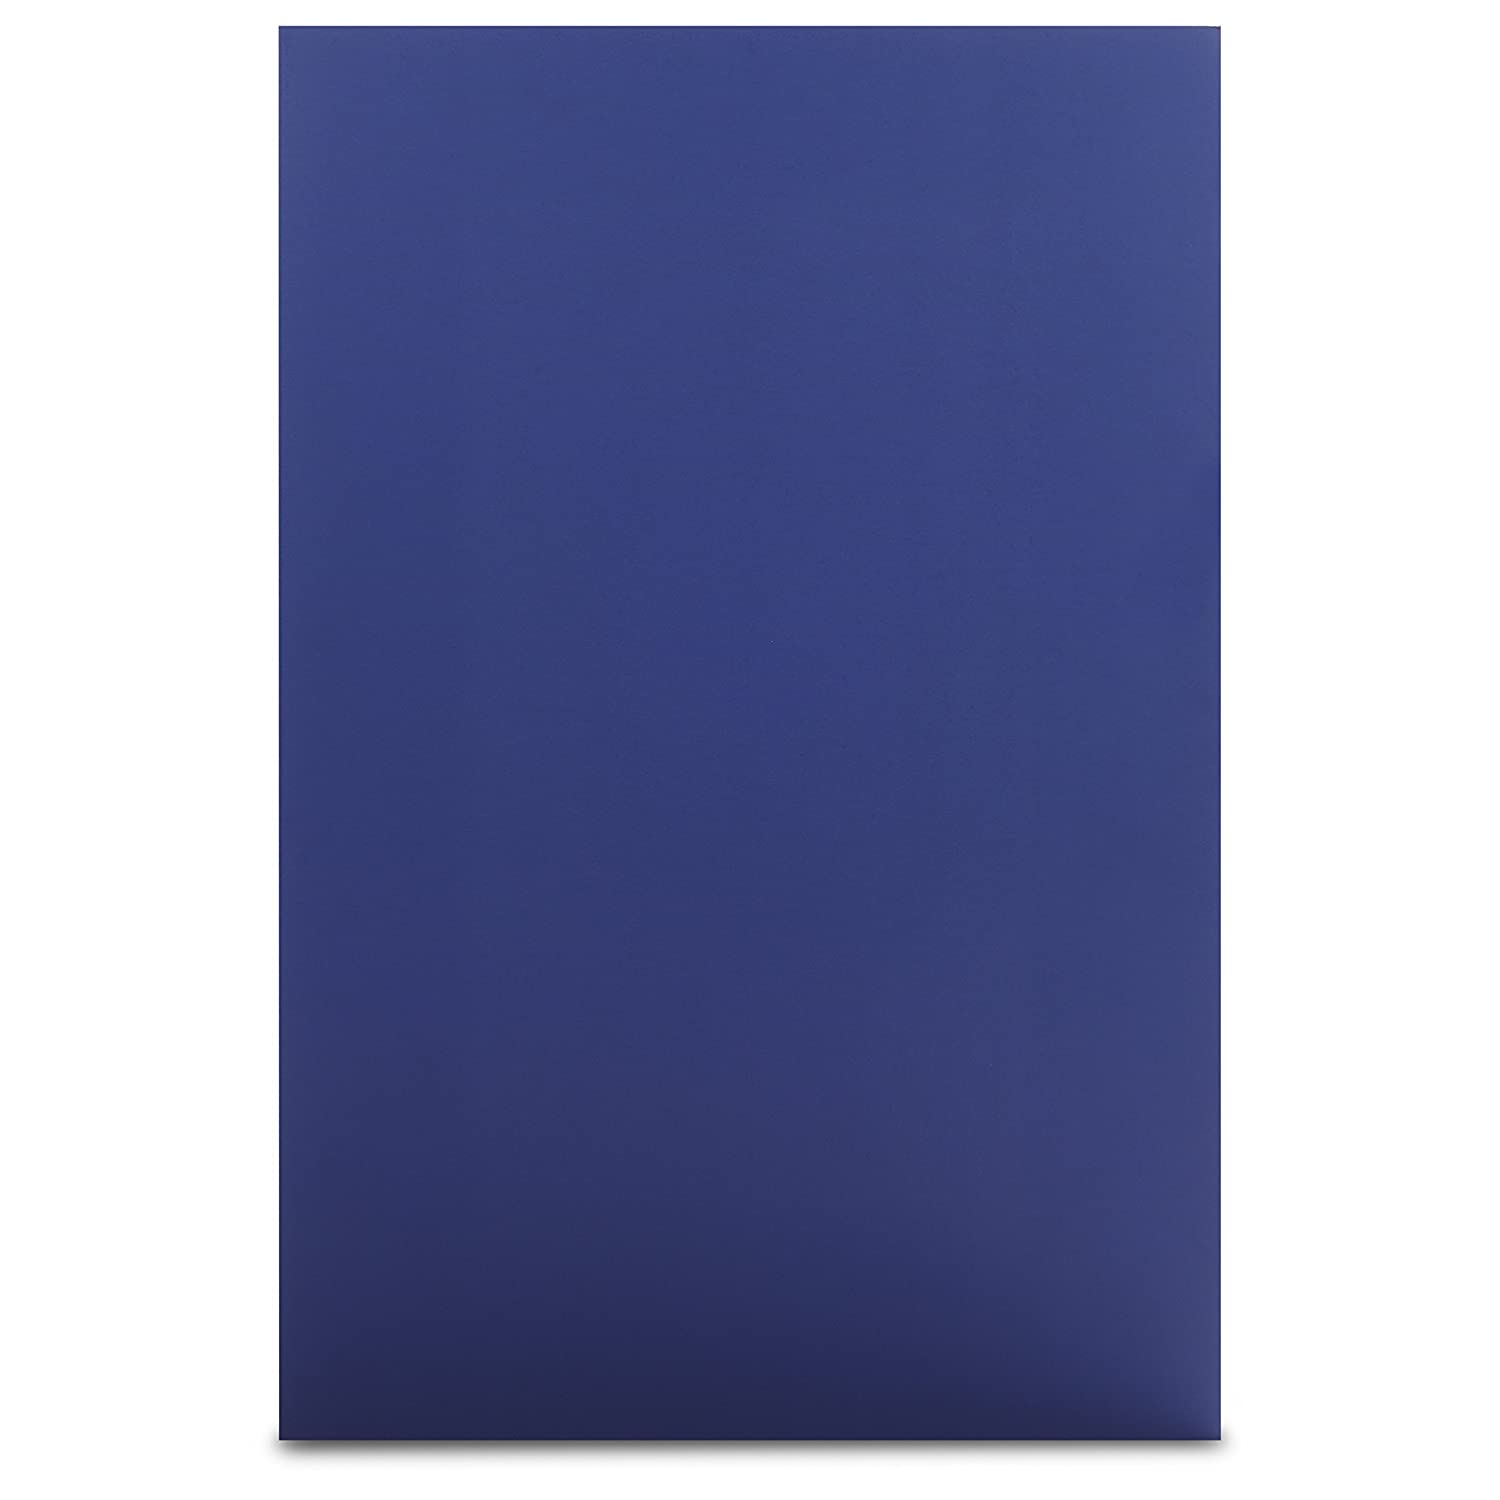 FOS FOAM BOARD 50X70 DARK BLUE COLOUR